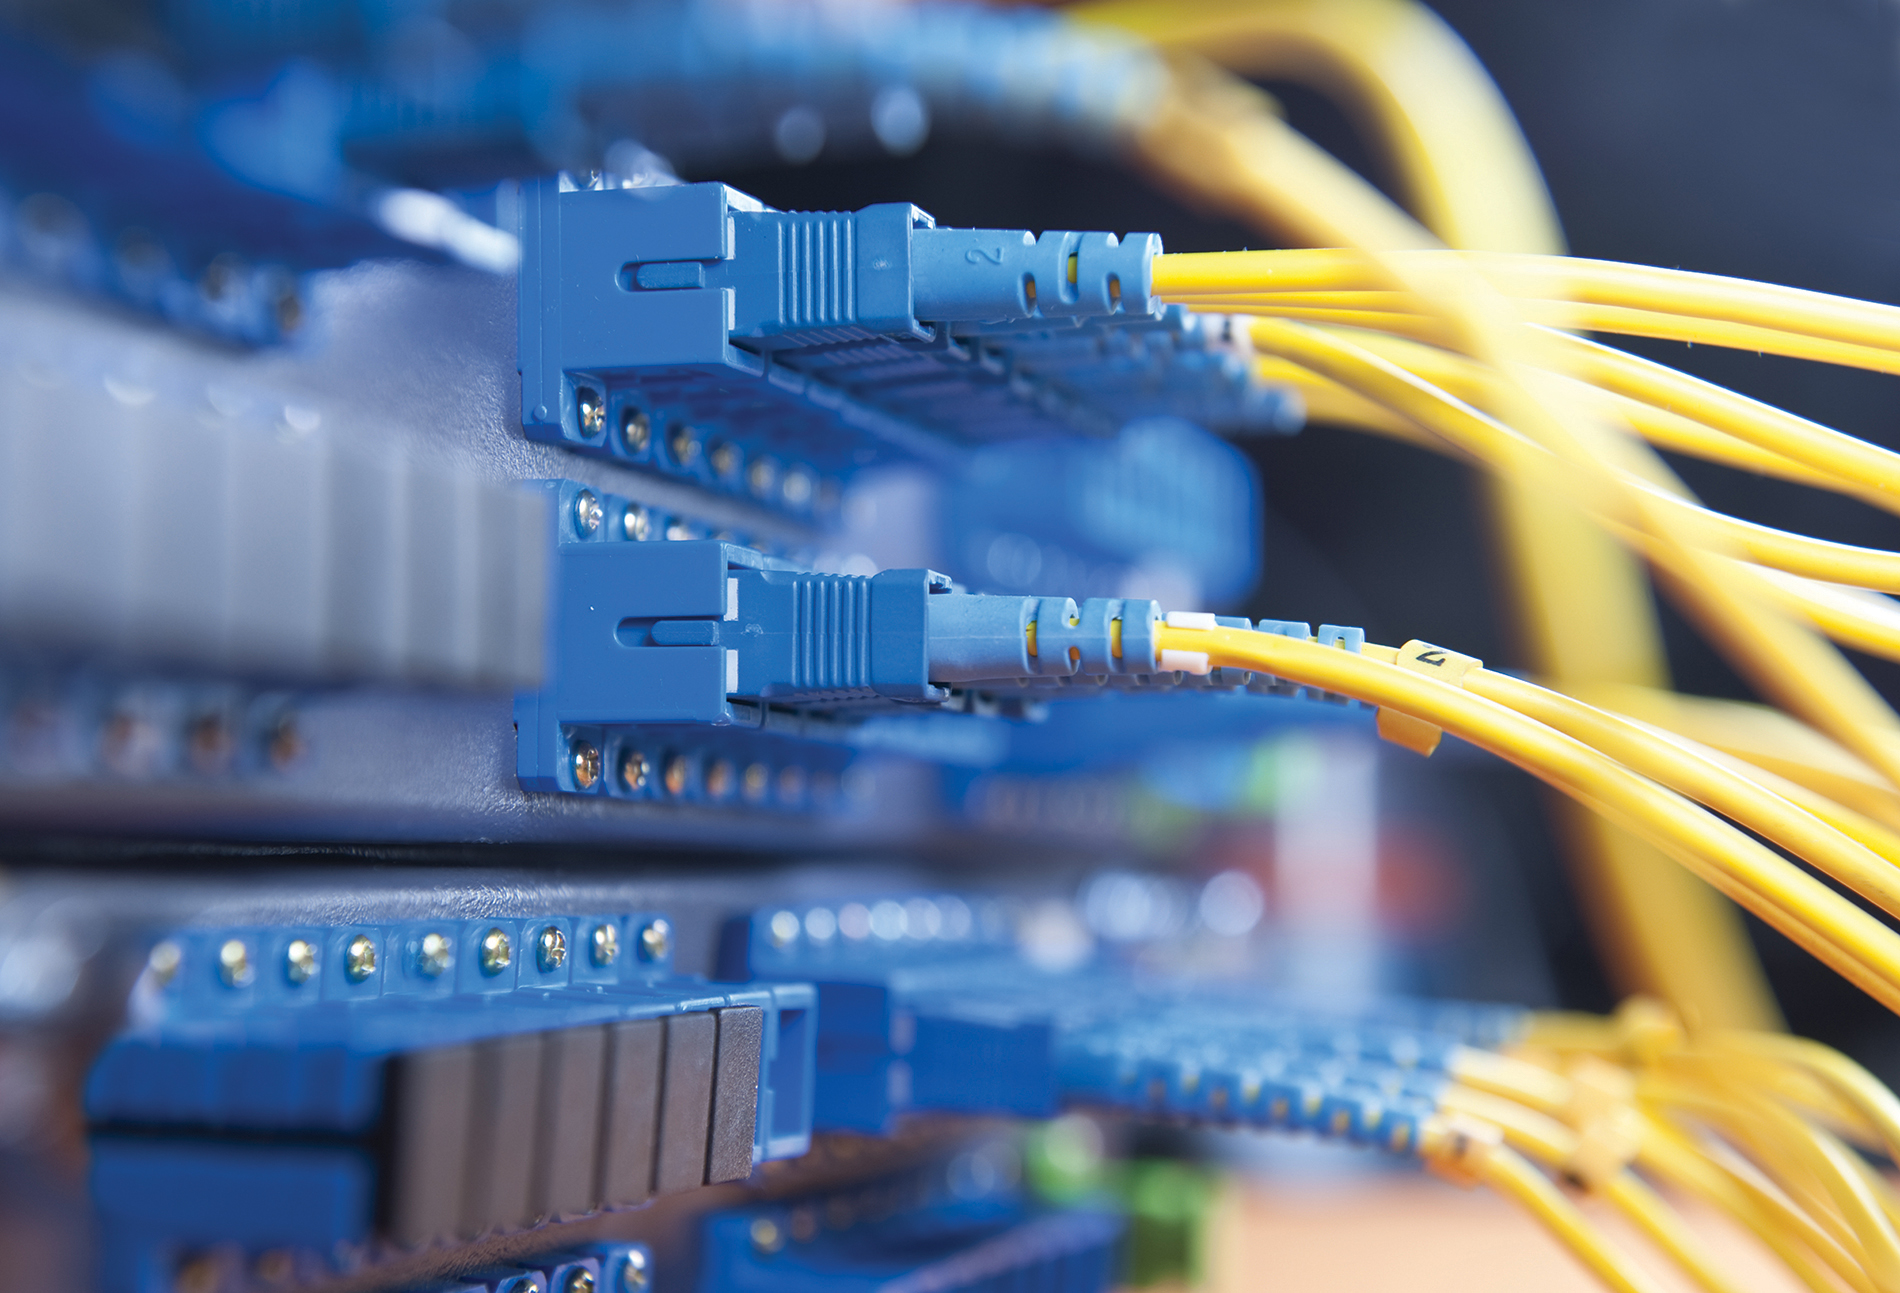 LaGrange GA High Quality On Site Cabling for Voice & Data Networks, Low Voltage Solutions